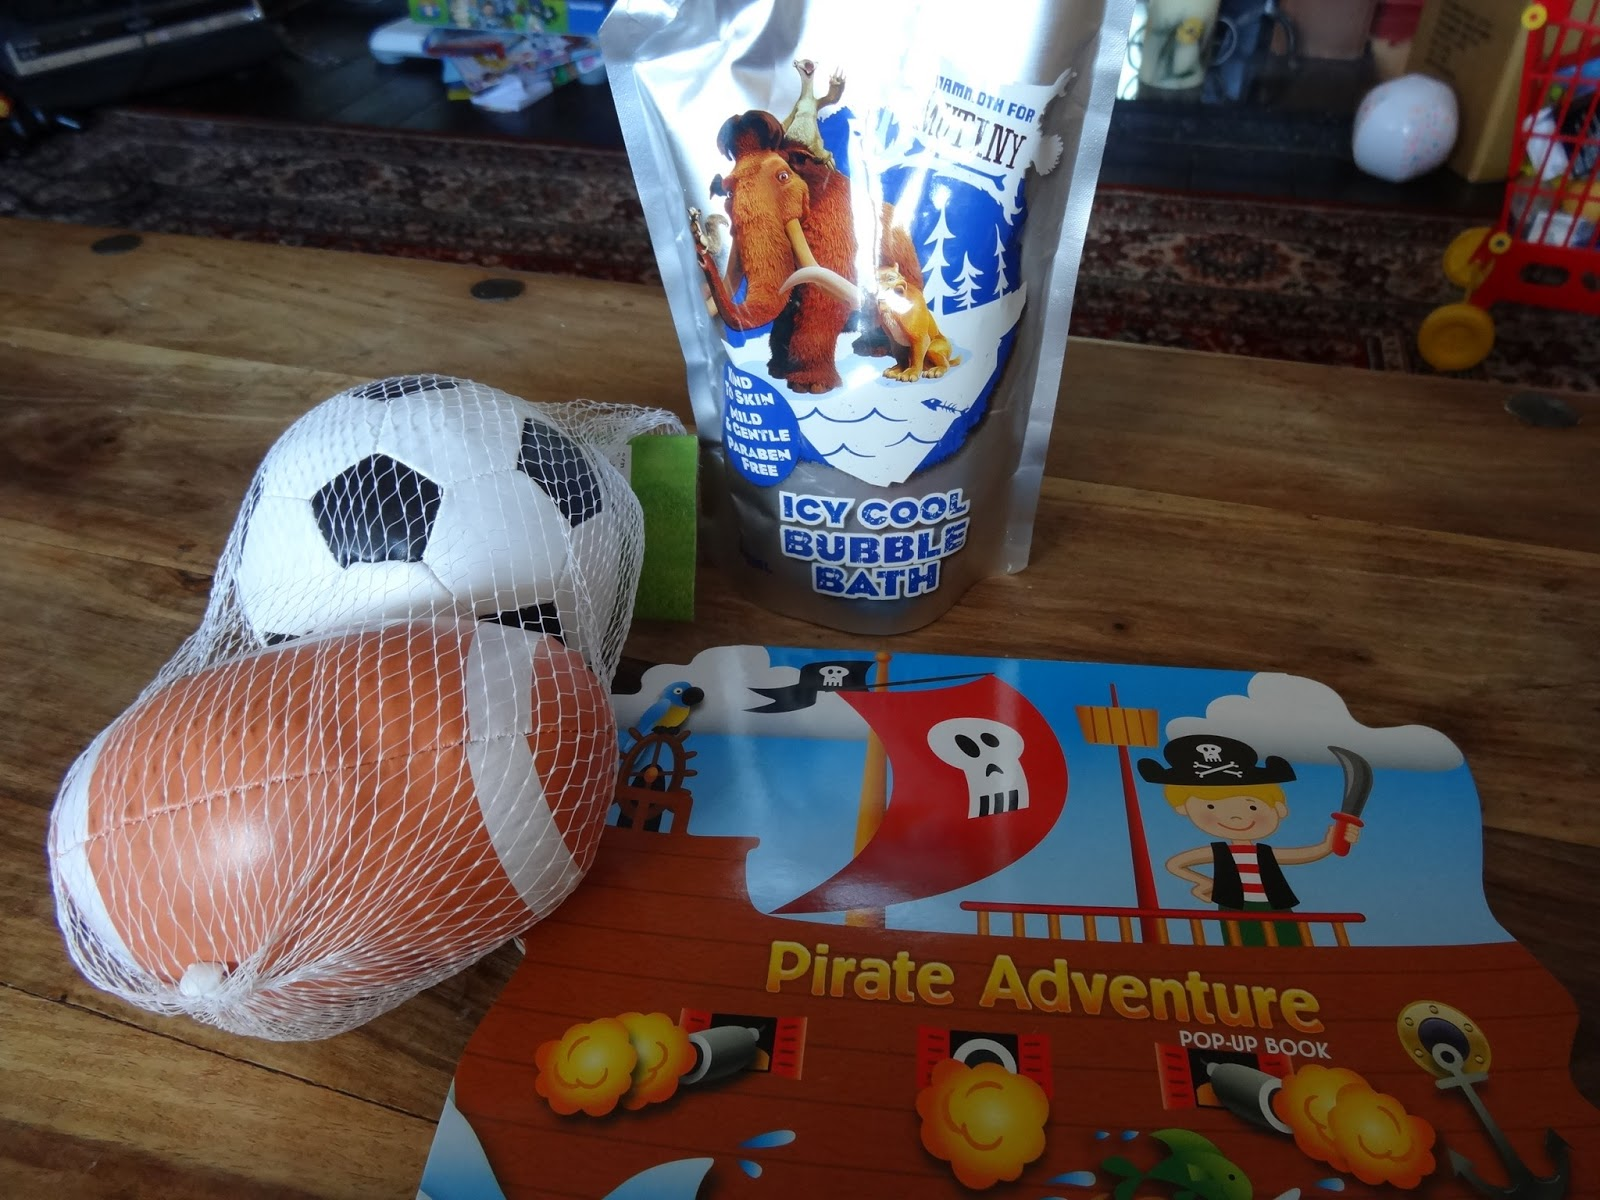 White apron poundland - For The Boy We Got A Pirate Adventure Book A Duo Of A Football And A Rugby Ball He S A Bit Obsessed With Football Out Of The Blue At The Moment And